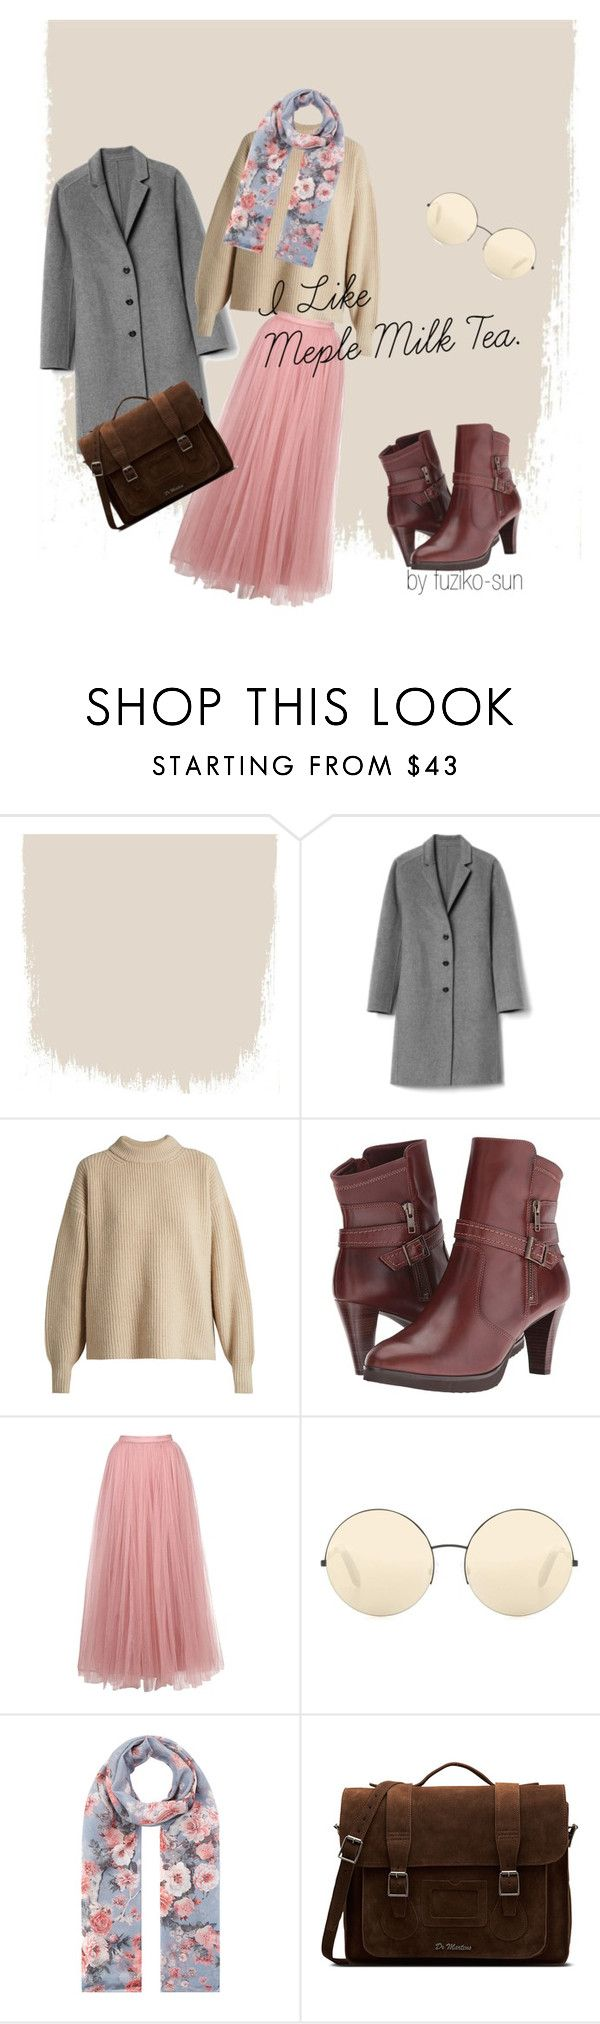 """""""book store girl"""" by fuziko-sun ❤ liked on Polyvore featuring Gap, The Row, Walking Cradles, Little Mistress, Victoria Beckham, Accessorize and Dr. Martens"""